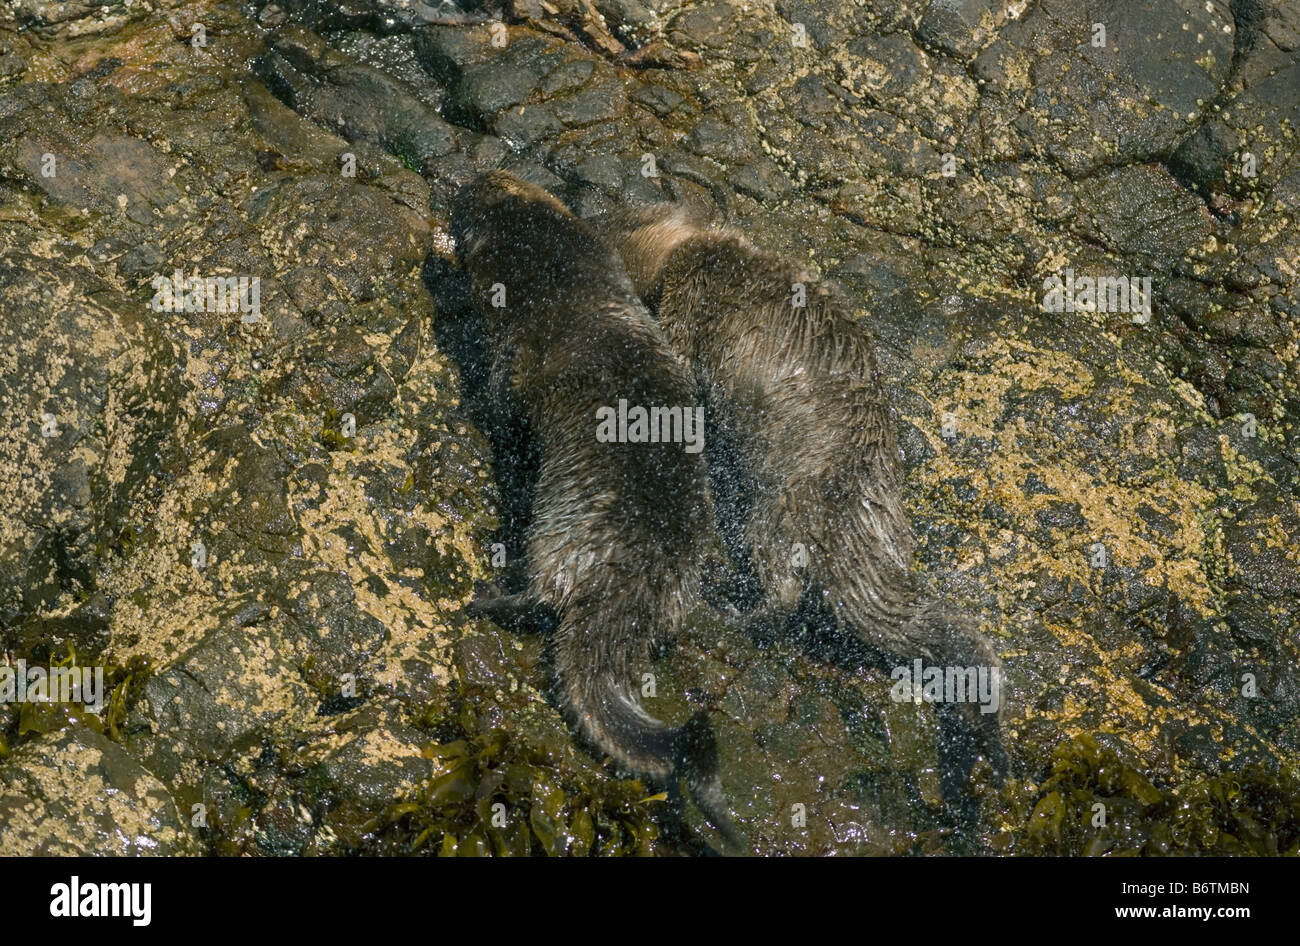 Marine Otters (Lontra felina) ENDANGERED, Shaking off water, Chiloe Island, CHILE - Stock Image